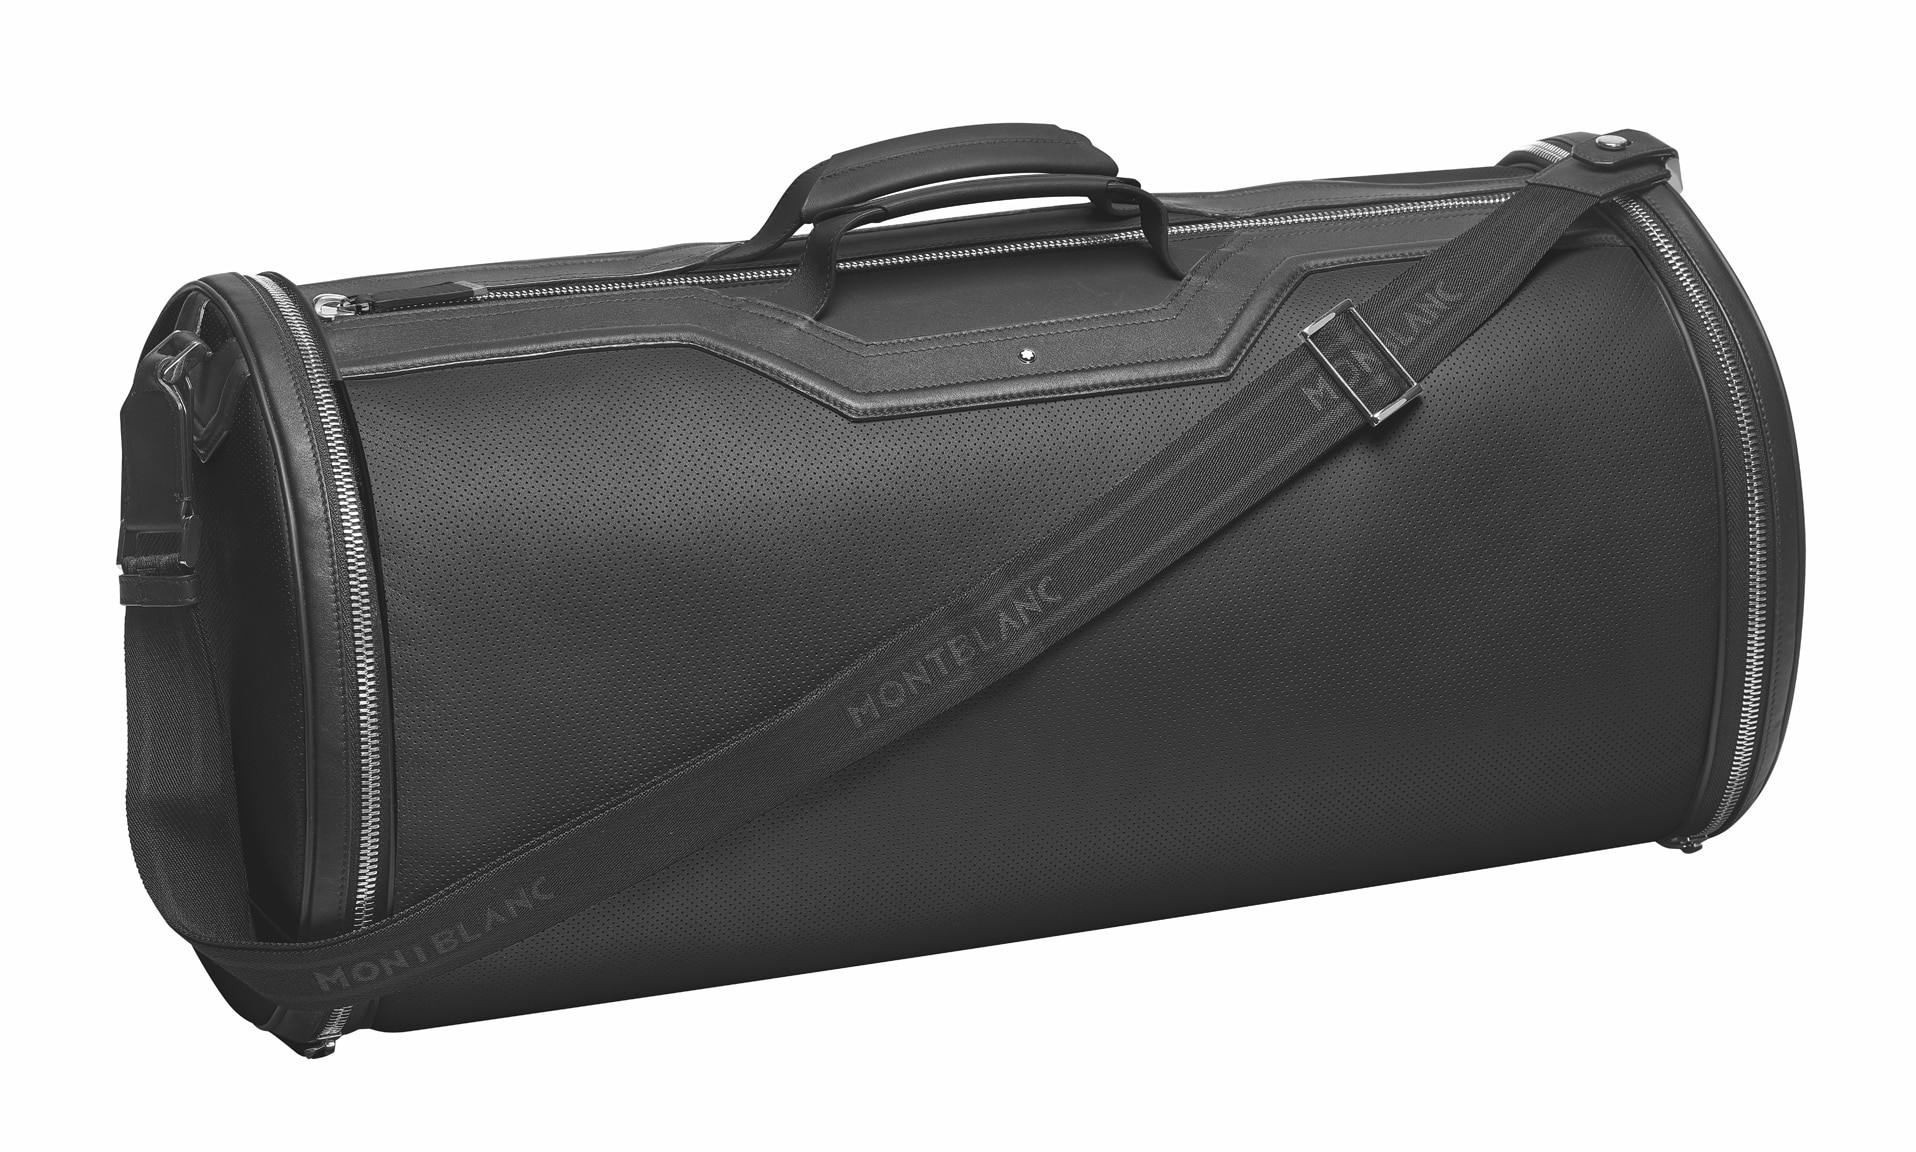 4d52c80b93 Buy This  17K BMW Montblanc Luggage Set or a New Honda Fit ...